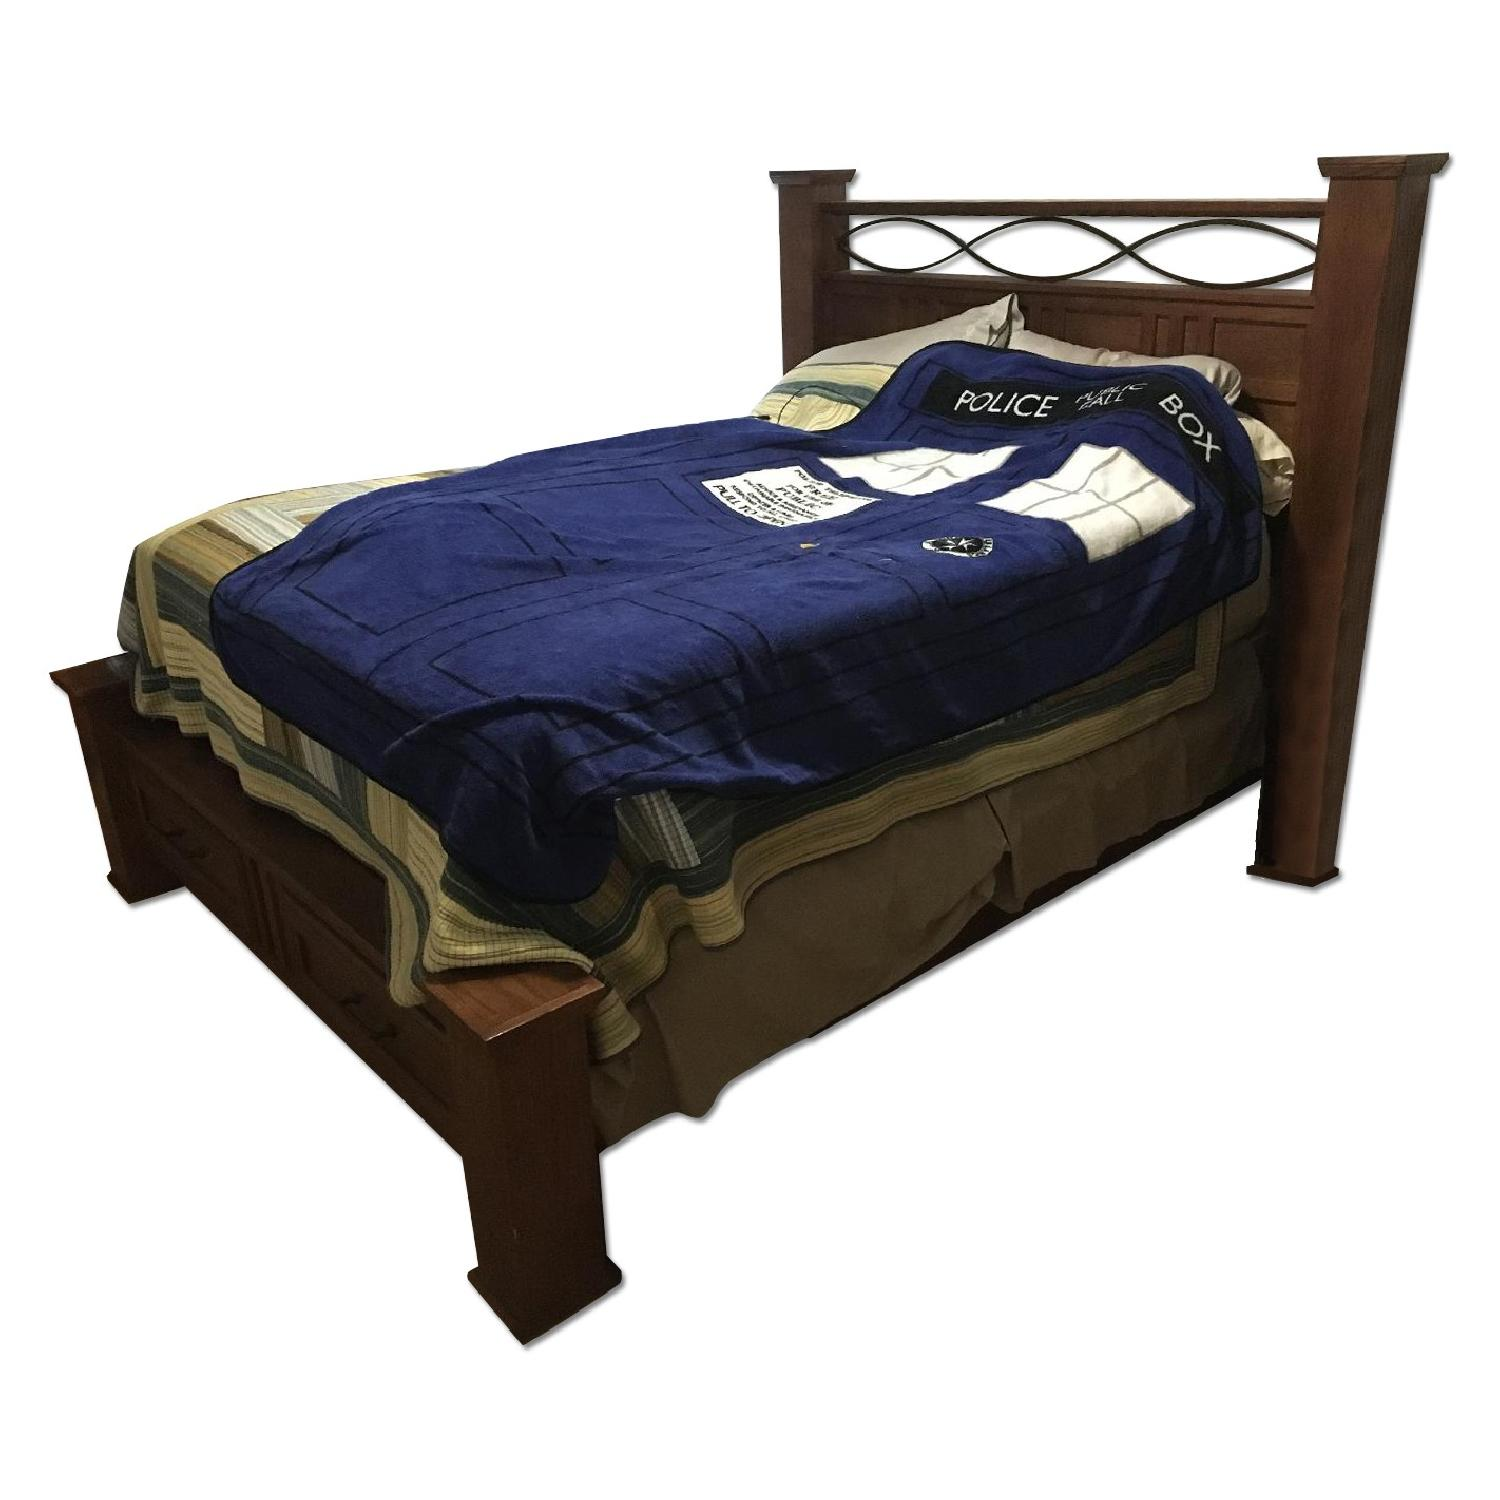 Raymour & Flanigan Queen Size Wooden Storage Bed Frame + 2 Nightstands - image-0